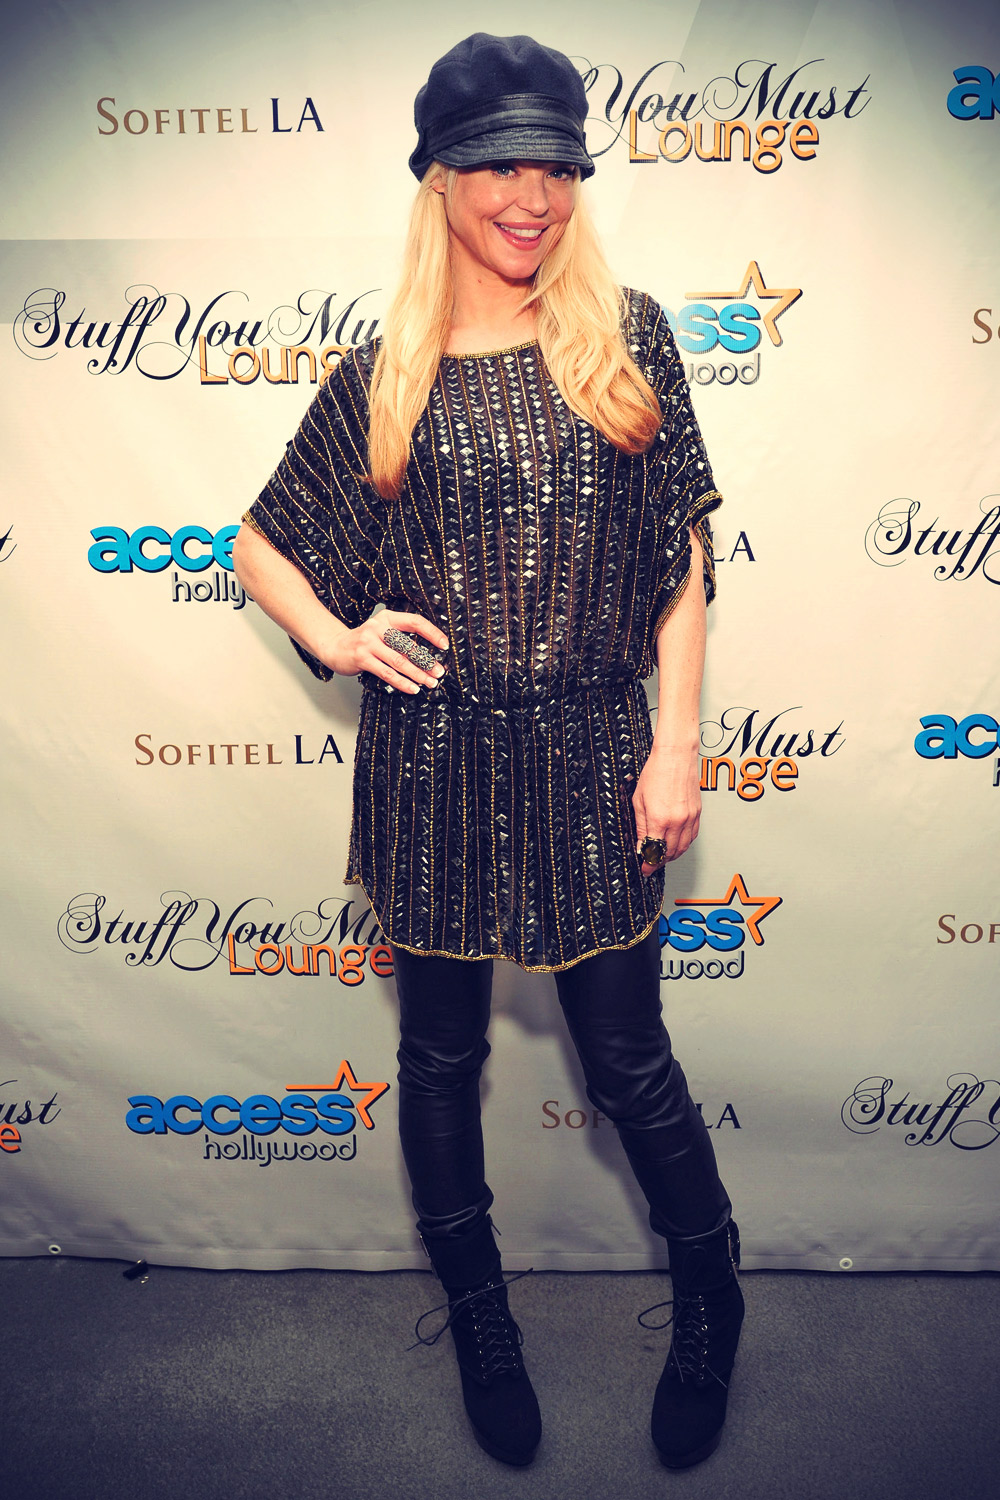 Charlotte Ross attends The Access Hollywood Stuff You Must Lounge